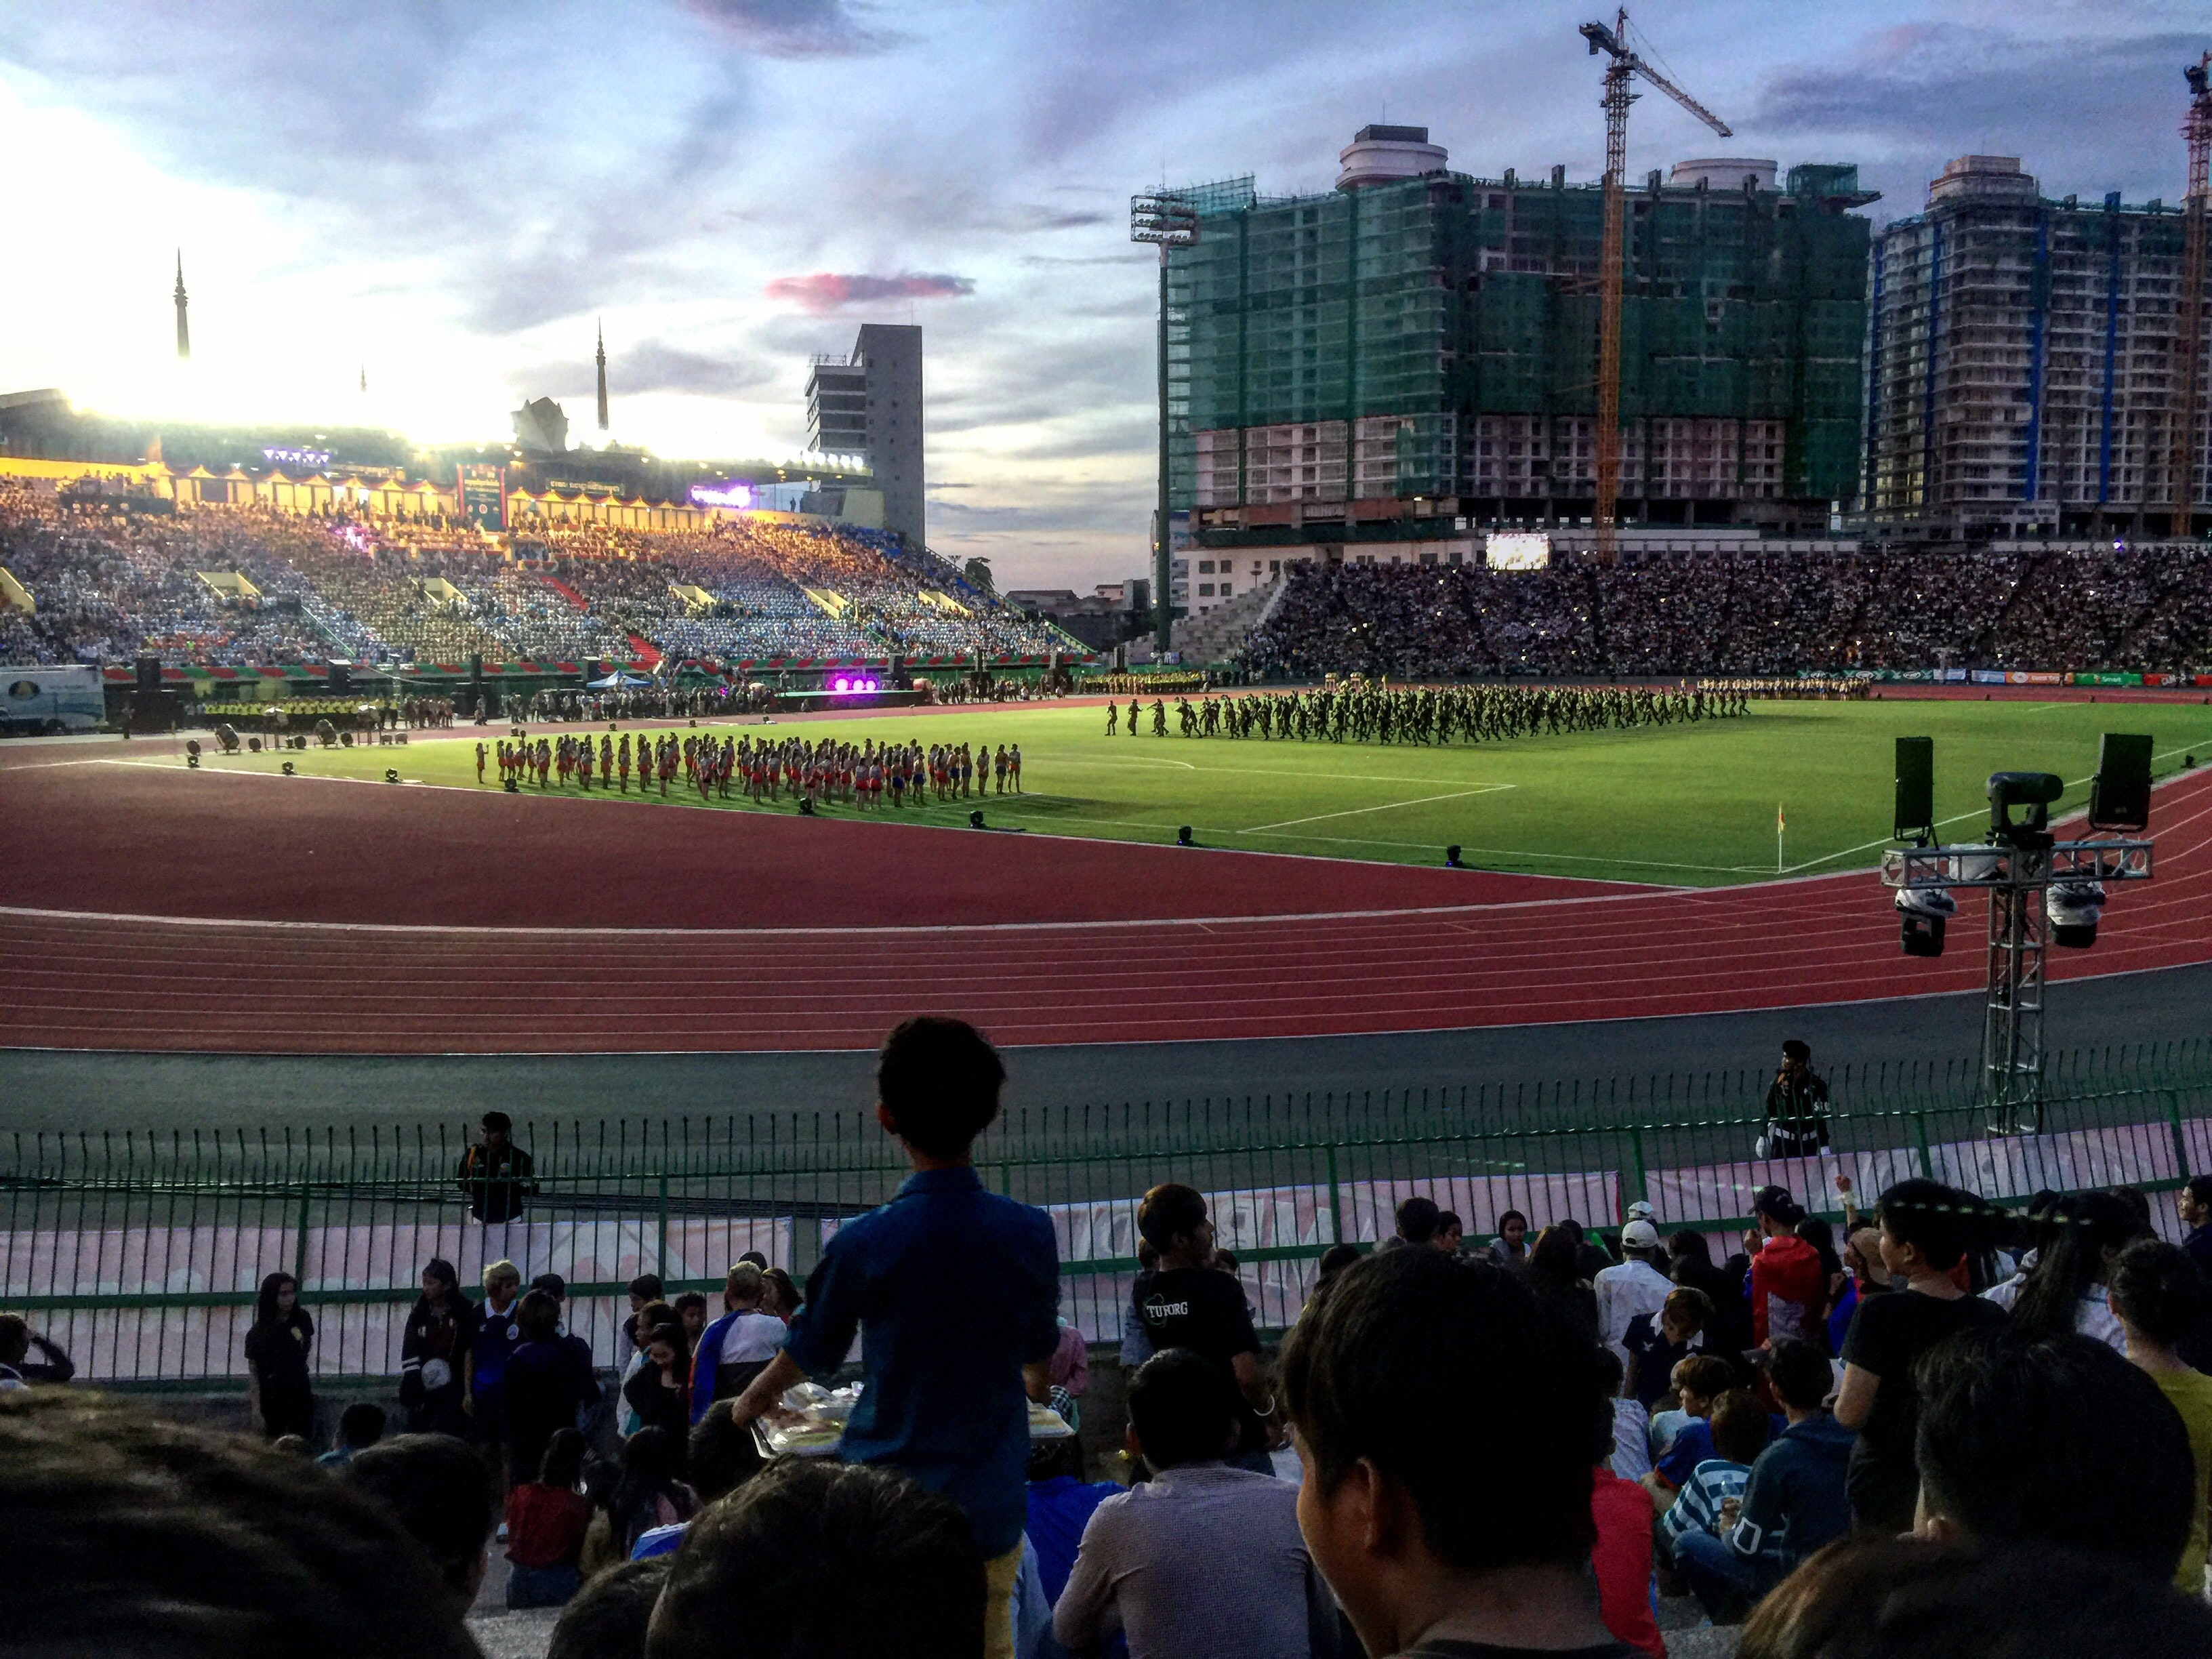 Group of People Watching Football Player Team on Field, Athletes, Uniforms, Stadium, Sports fan, HQ Photo